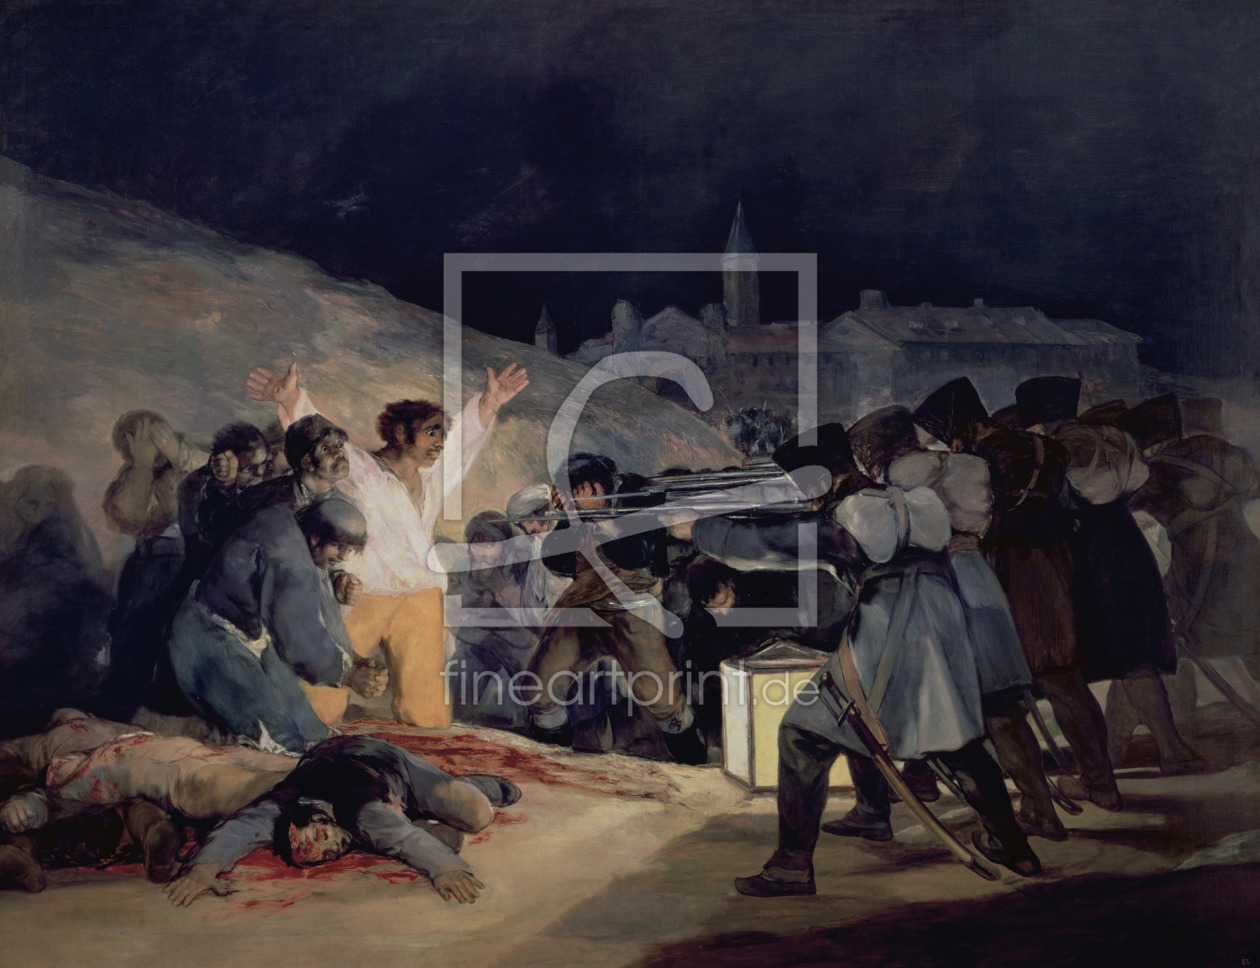 Bild-Nr.: 31000535 Execution of the Defenders of Madrid, 3rd May, 1808, 1814 erstellt von Goya, Francisco de